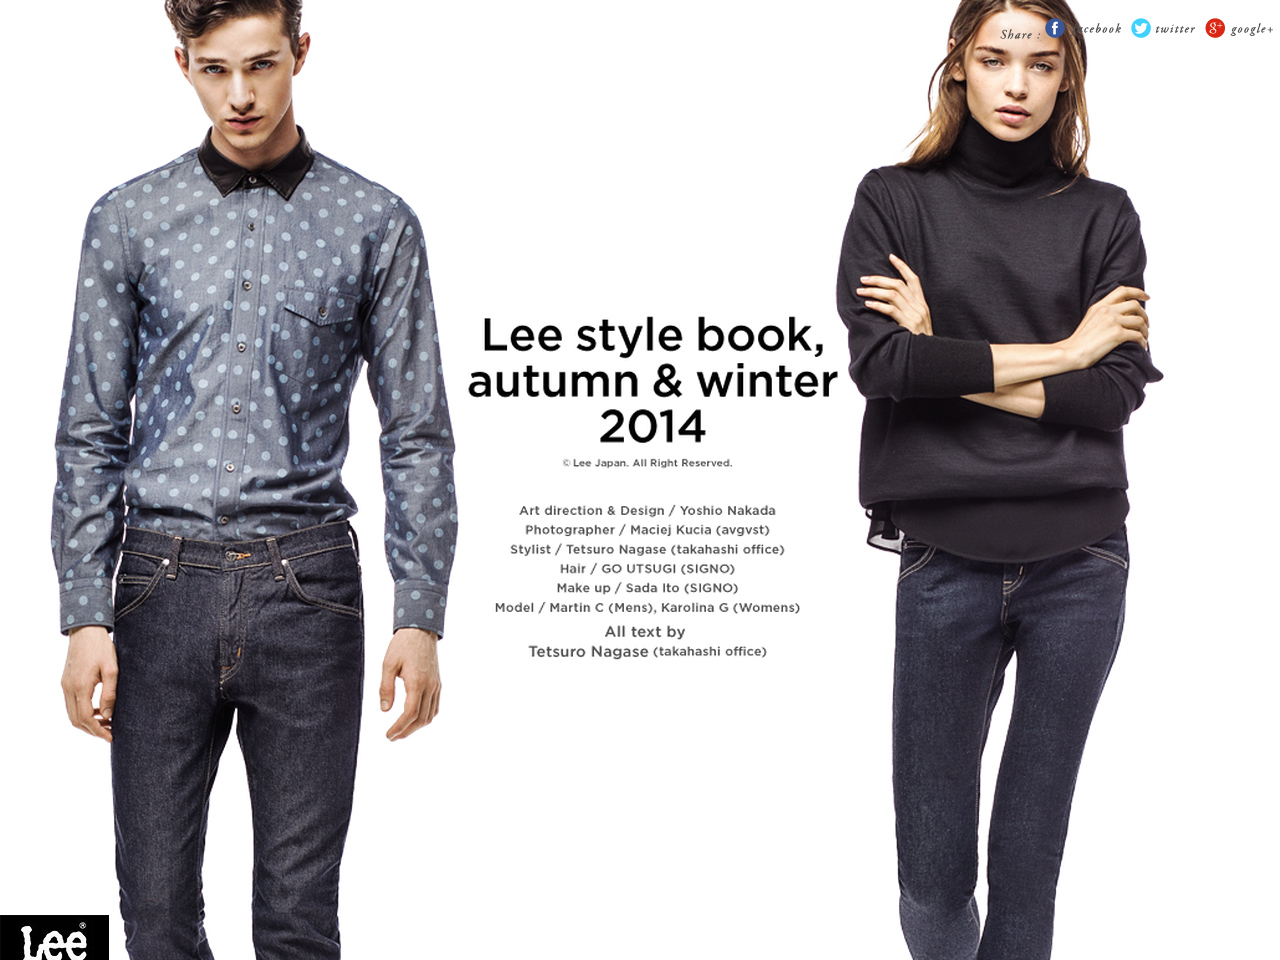 Lee style book, autumn & winter 2014